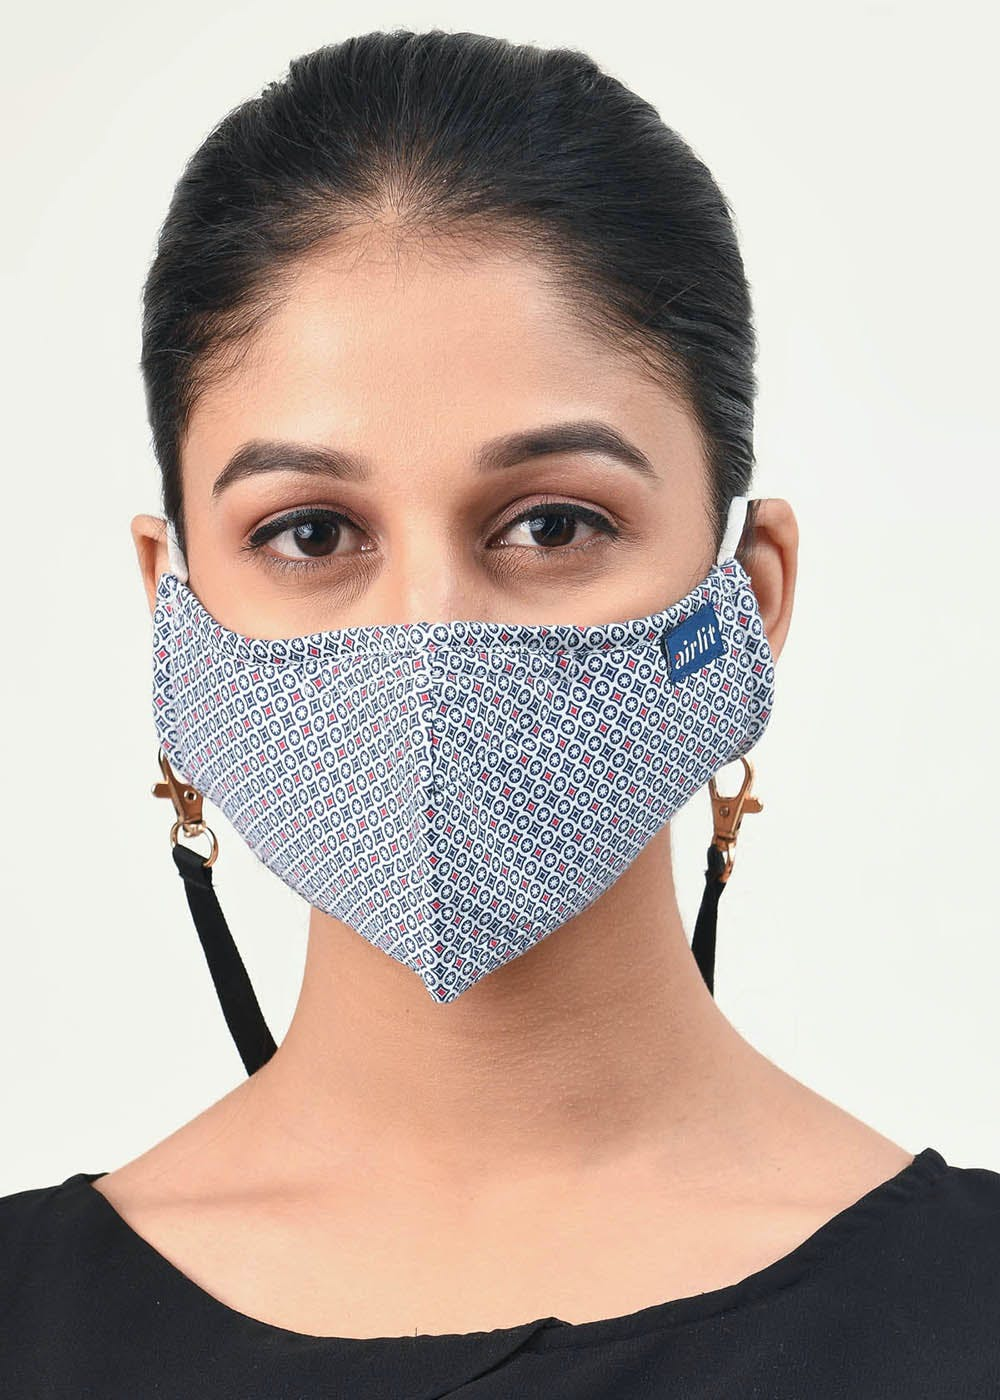 The Harlequin Mill Printed Reusable Mask